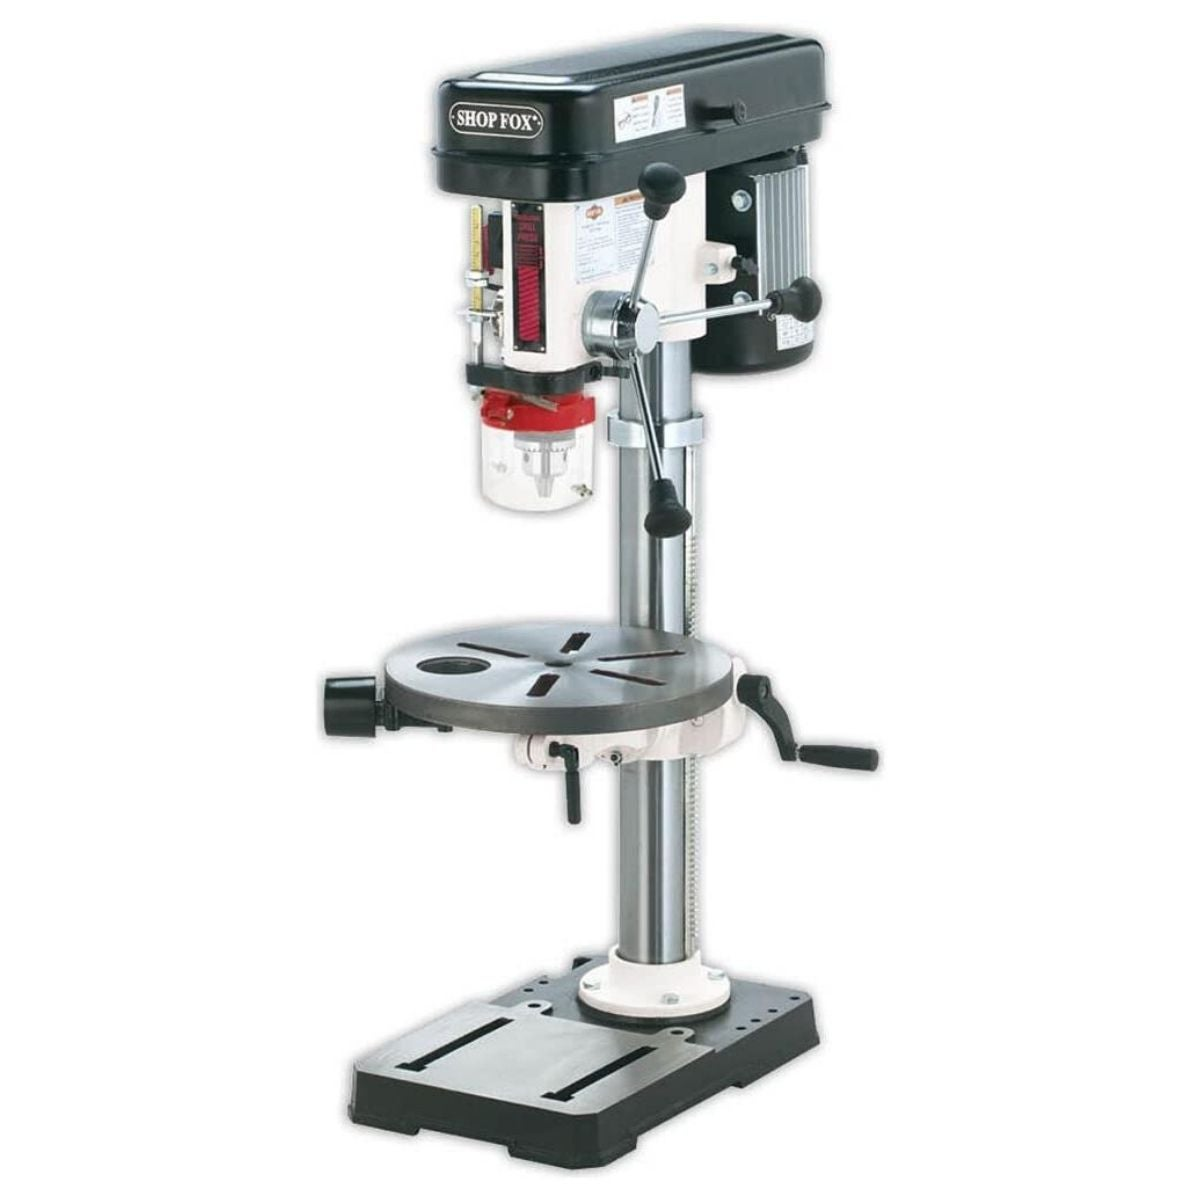 The Best Benchtop Drill Press for Your Workshop - Bob Vila